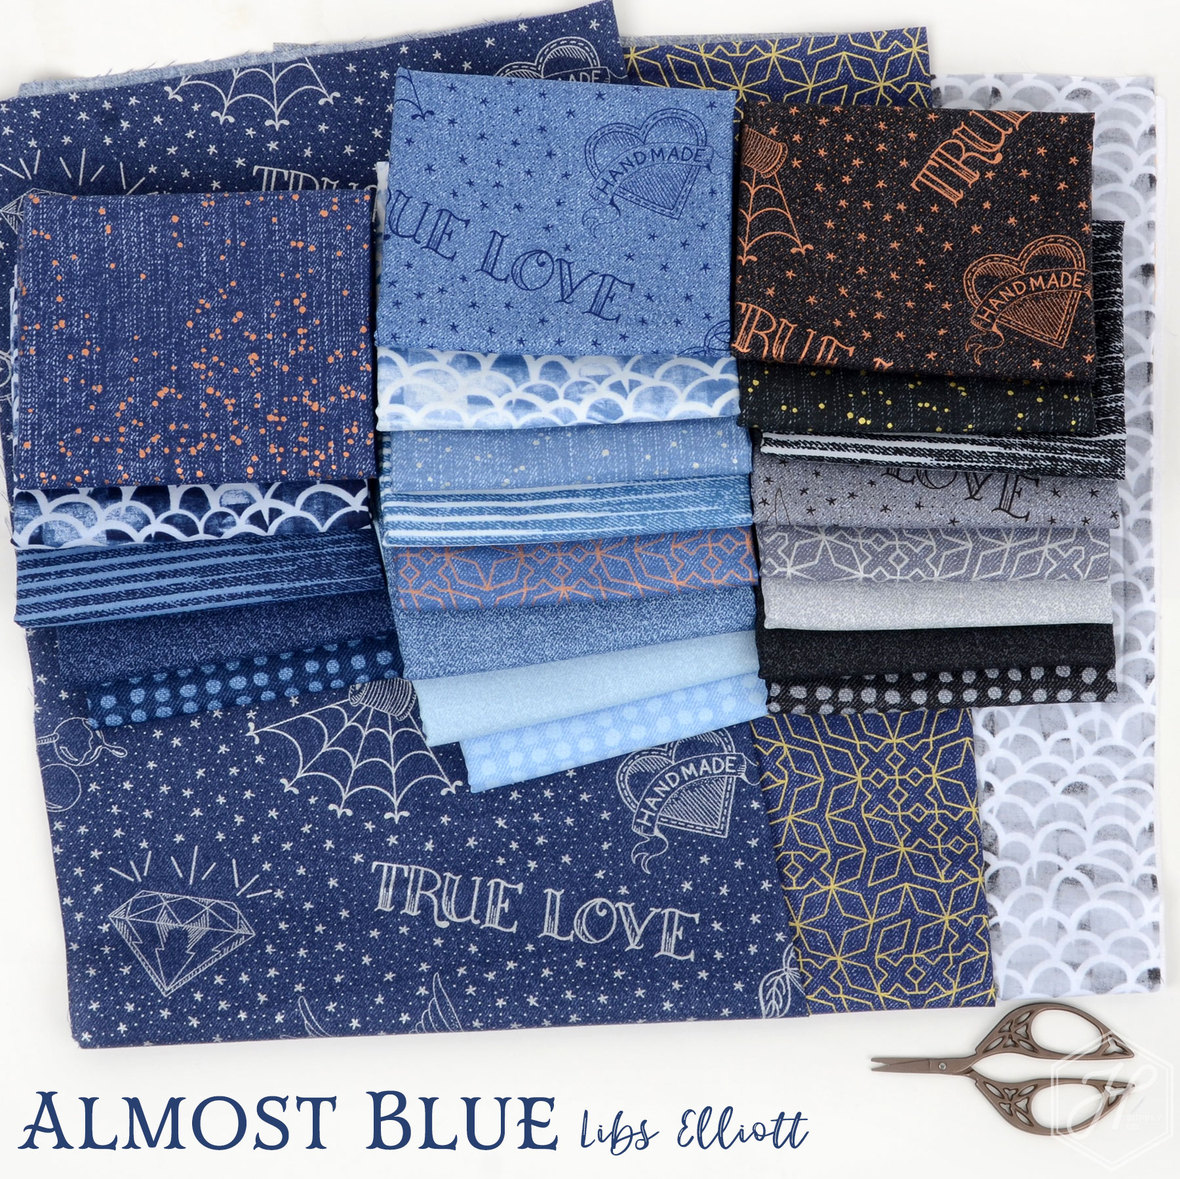 Almost-Blue-Libs-Elliott-for-Andover-at-Hawthorne-Supply-Co.